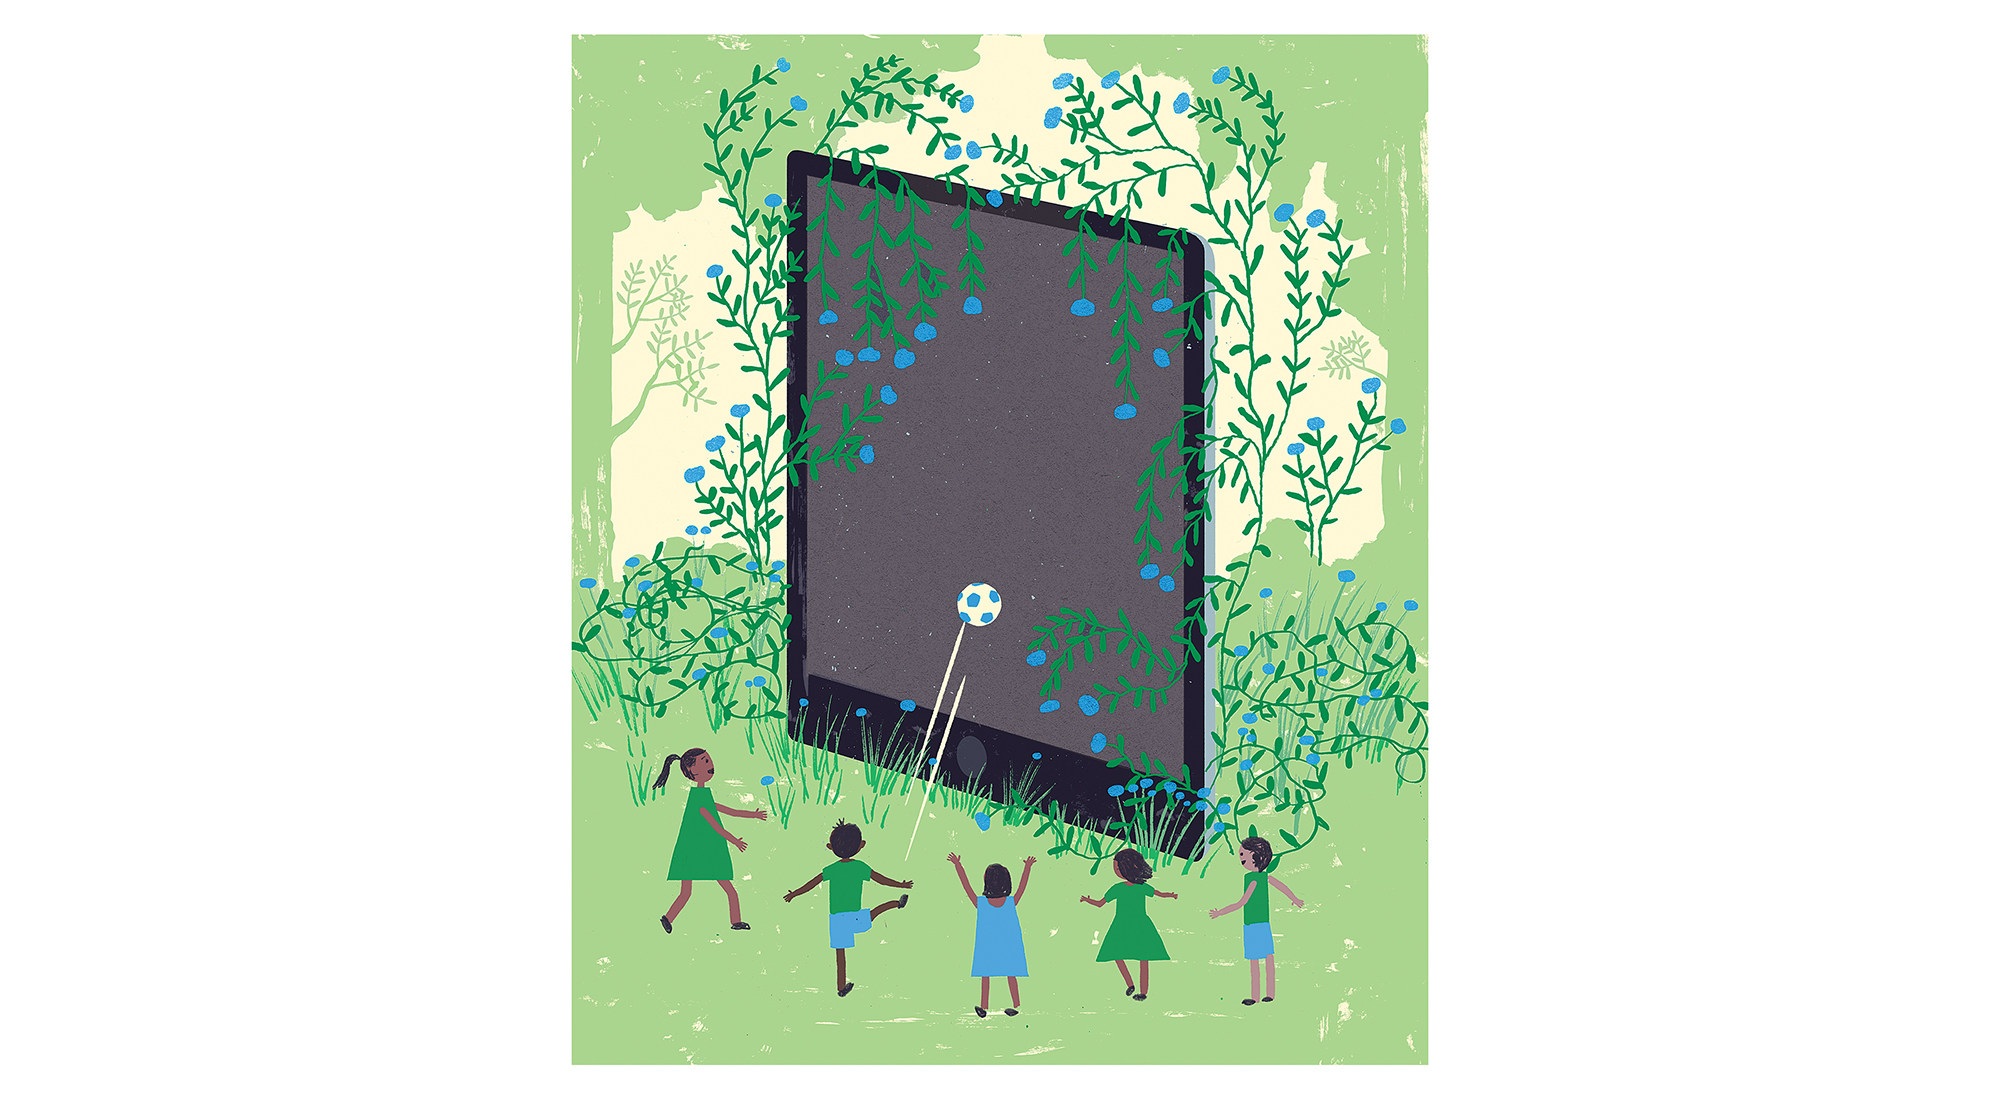 Illustration: kids playing soccer with a giant tablet screen